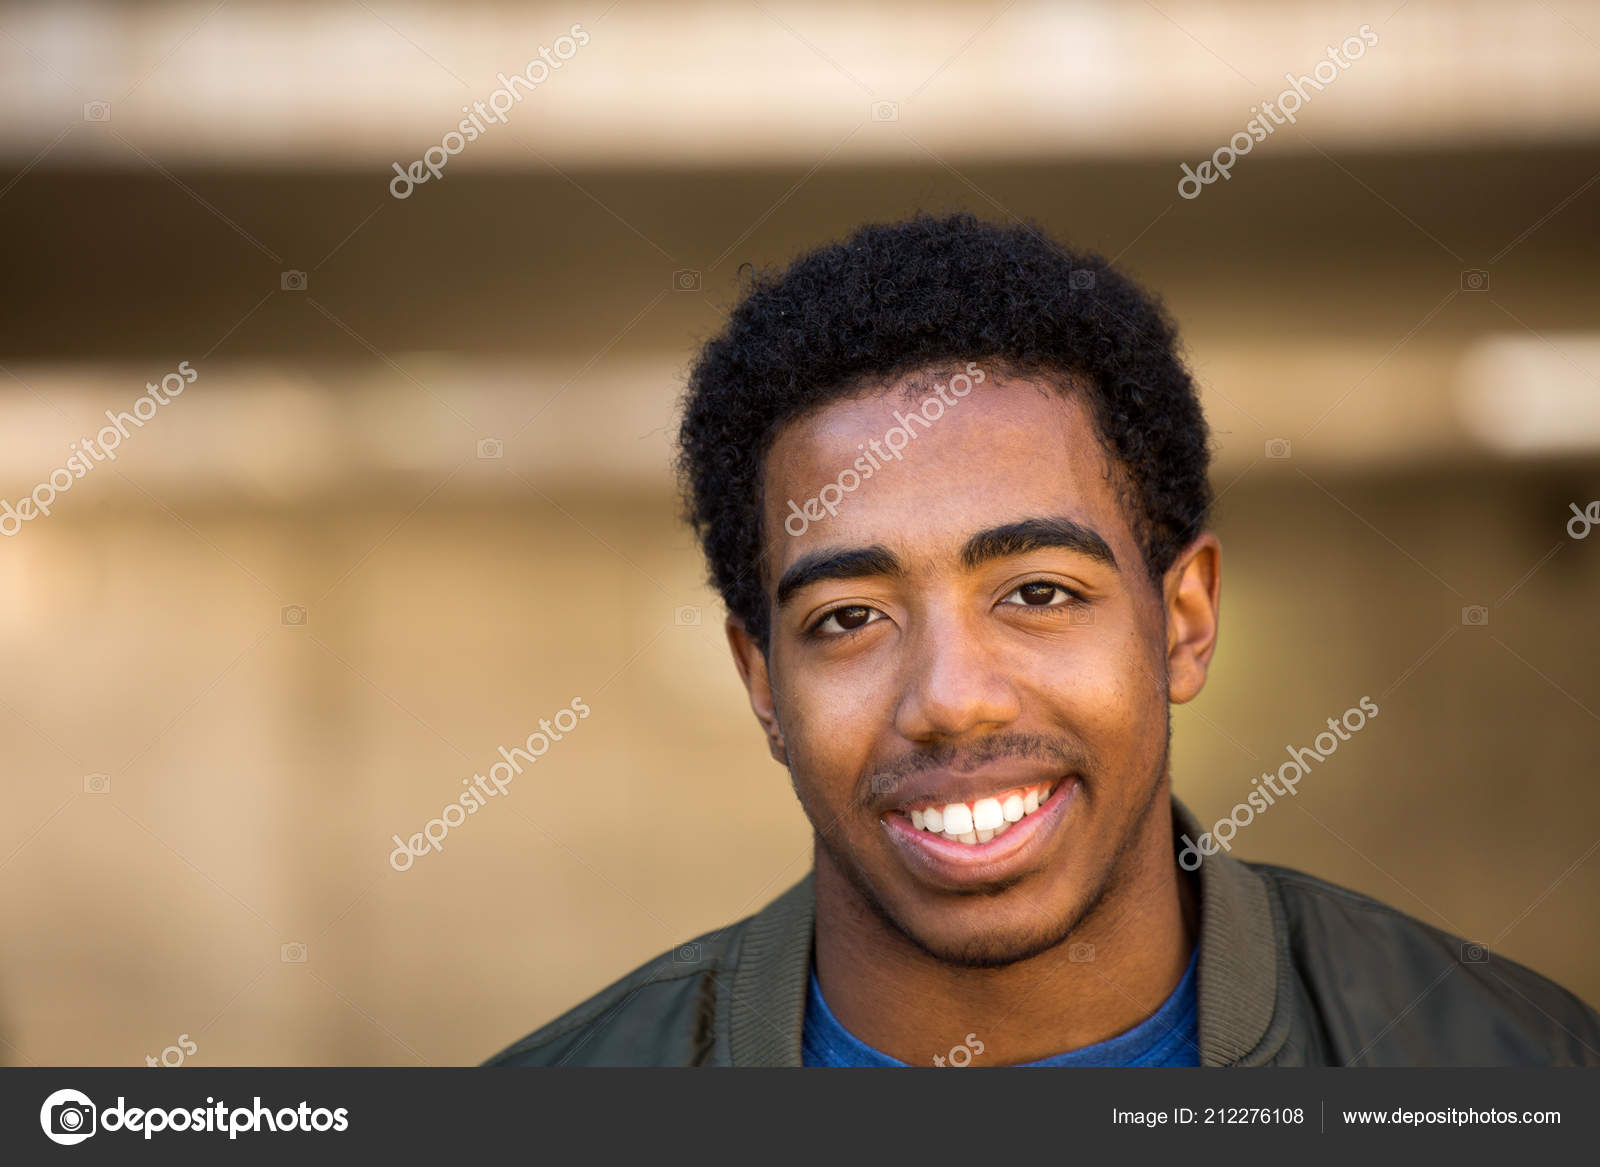 African American Teenage Boy Smiling Stock Photo Image By C Pixelheadphoto 212276108